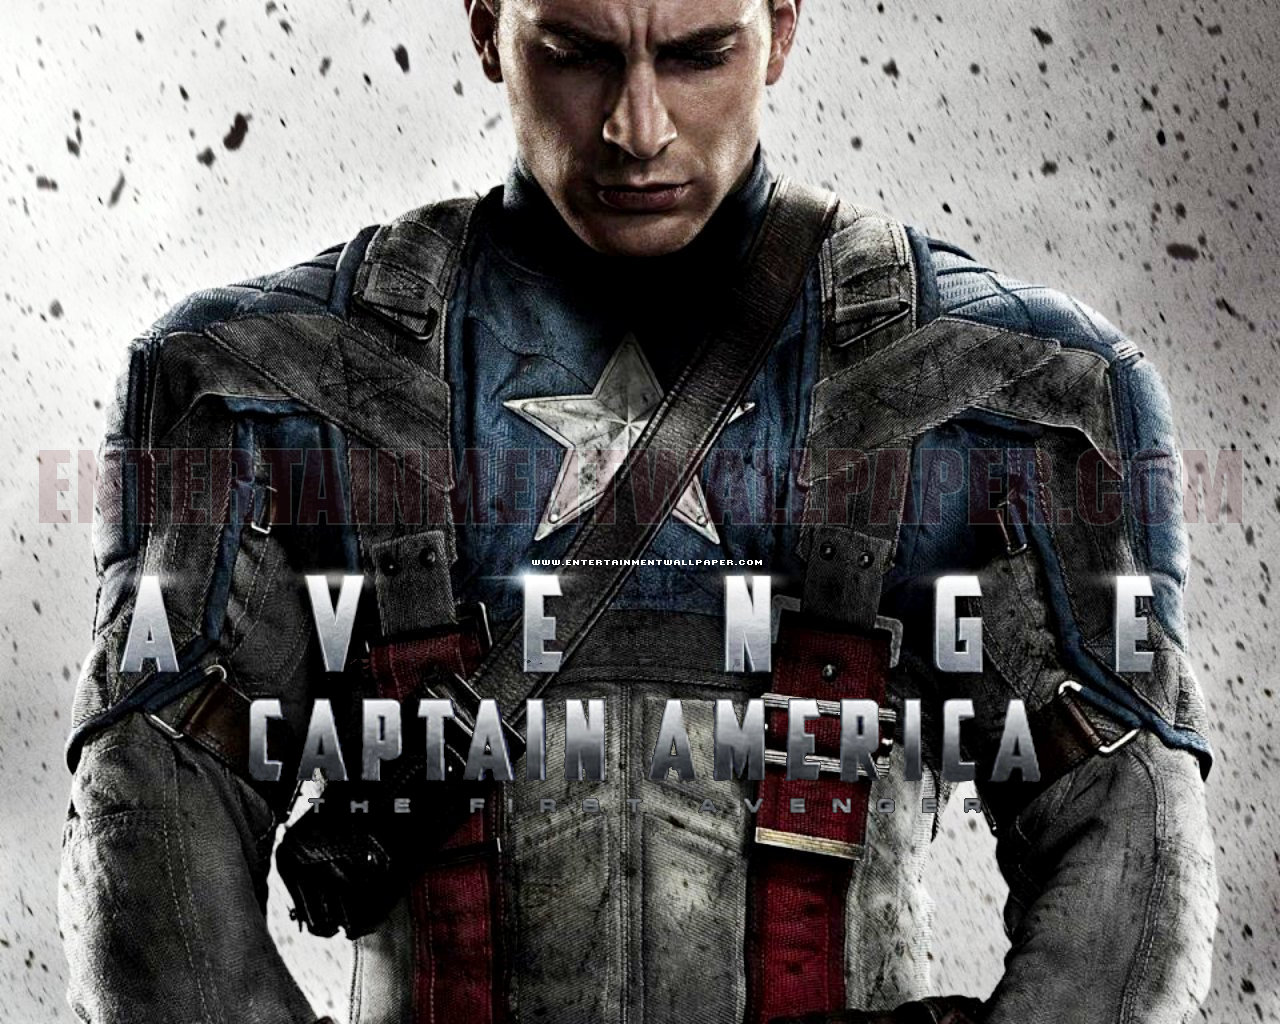 http://3.bp.blogspot.com/-oGG2_MZU2PA/Th4eTZrdpiI/AAAAAAAAAUA/4eQMFaZ5lxE/s1600/captain_america_the_first_avenger01.jpg